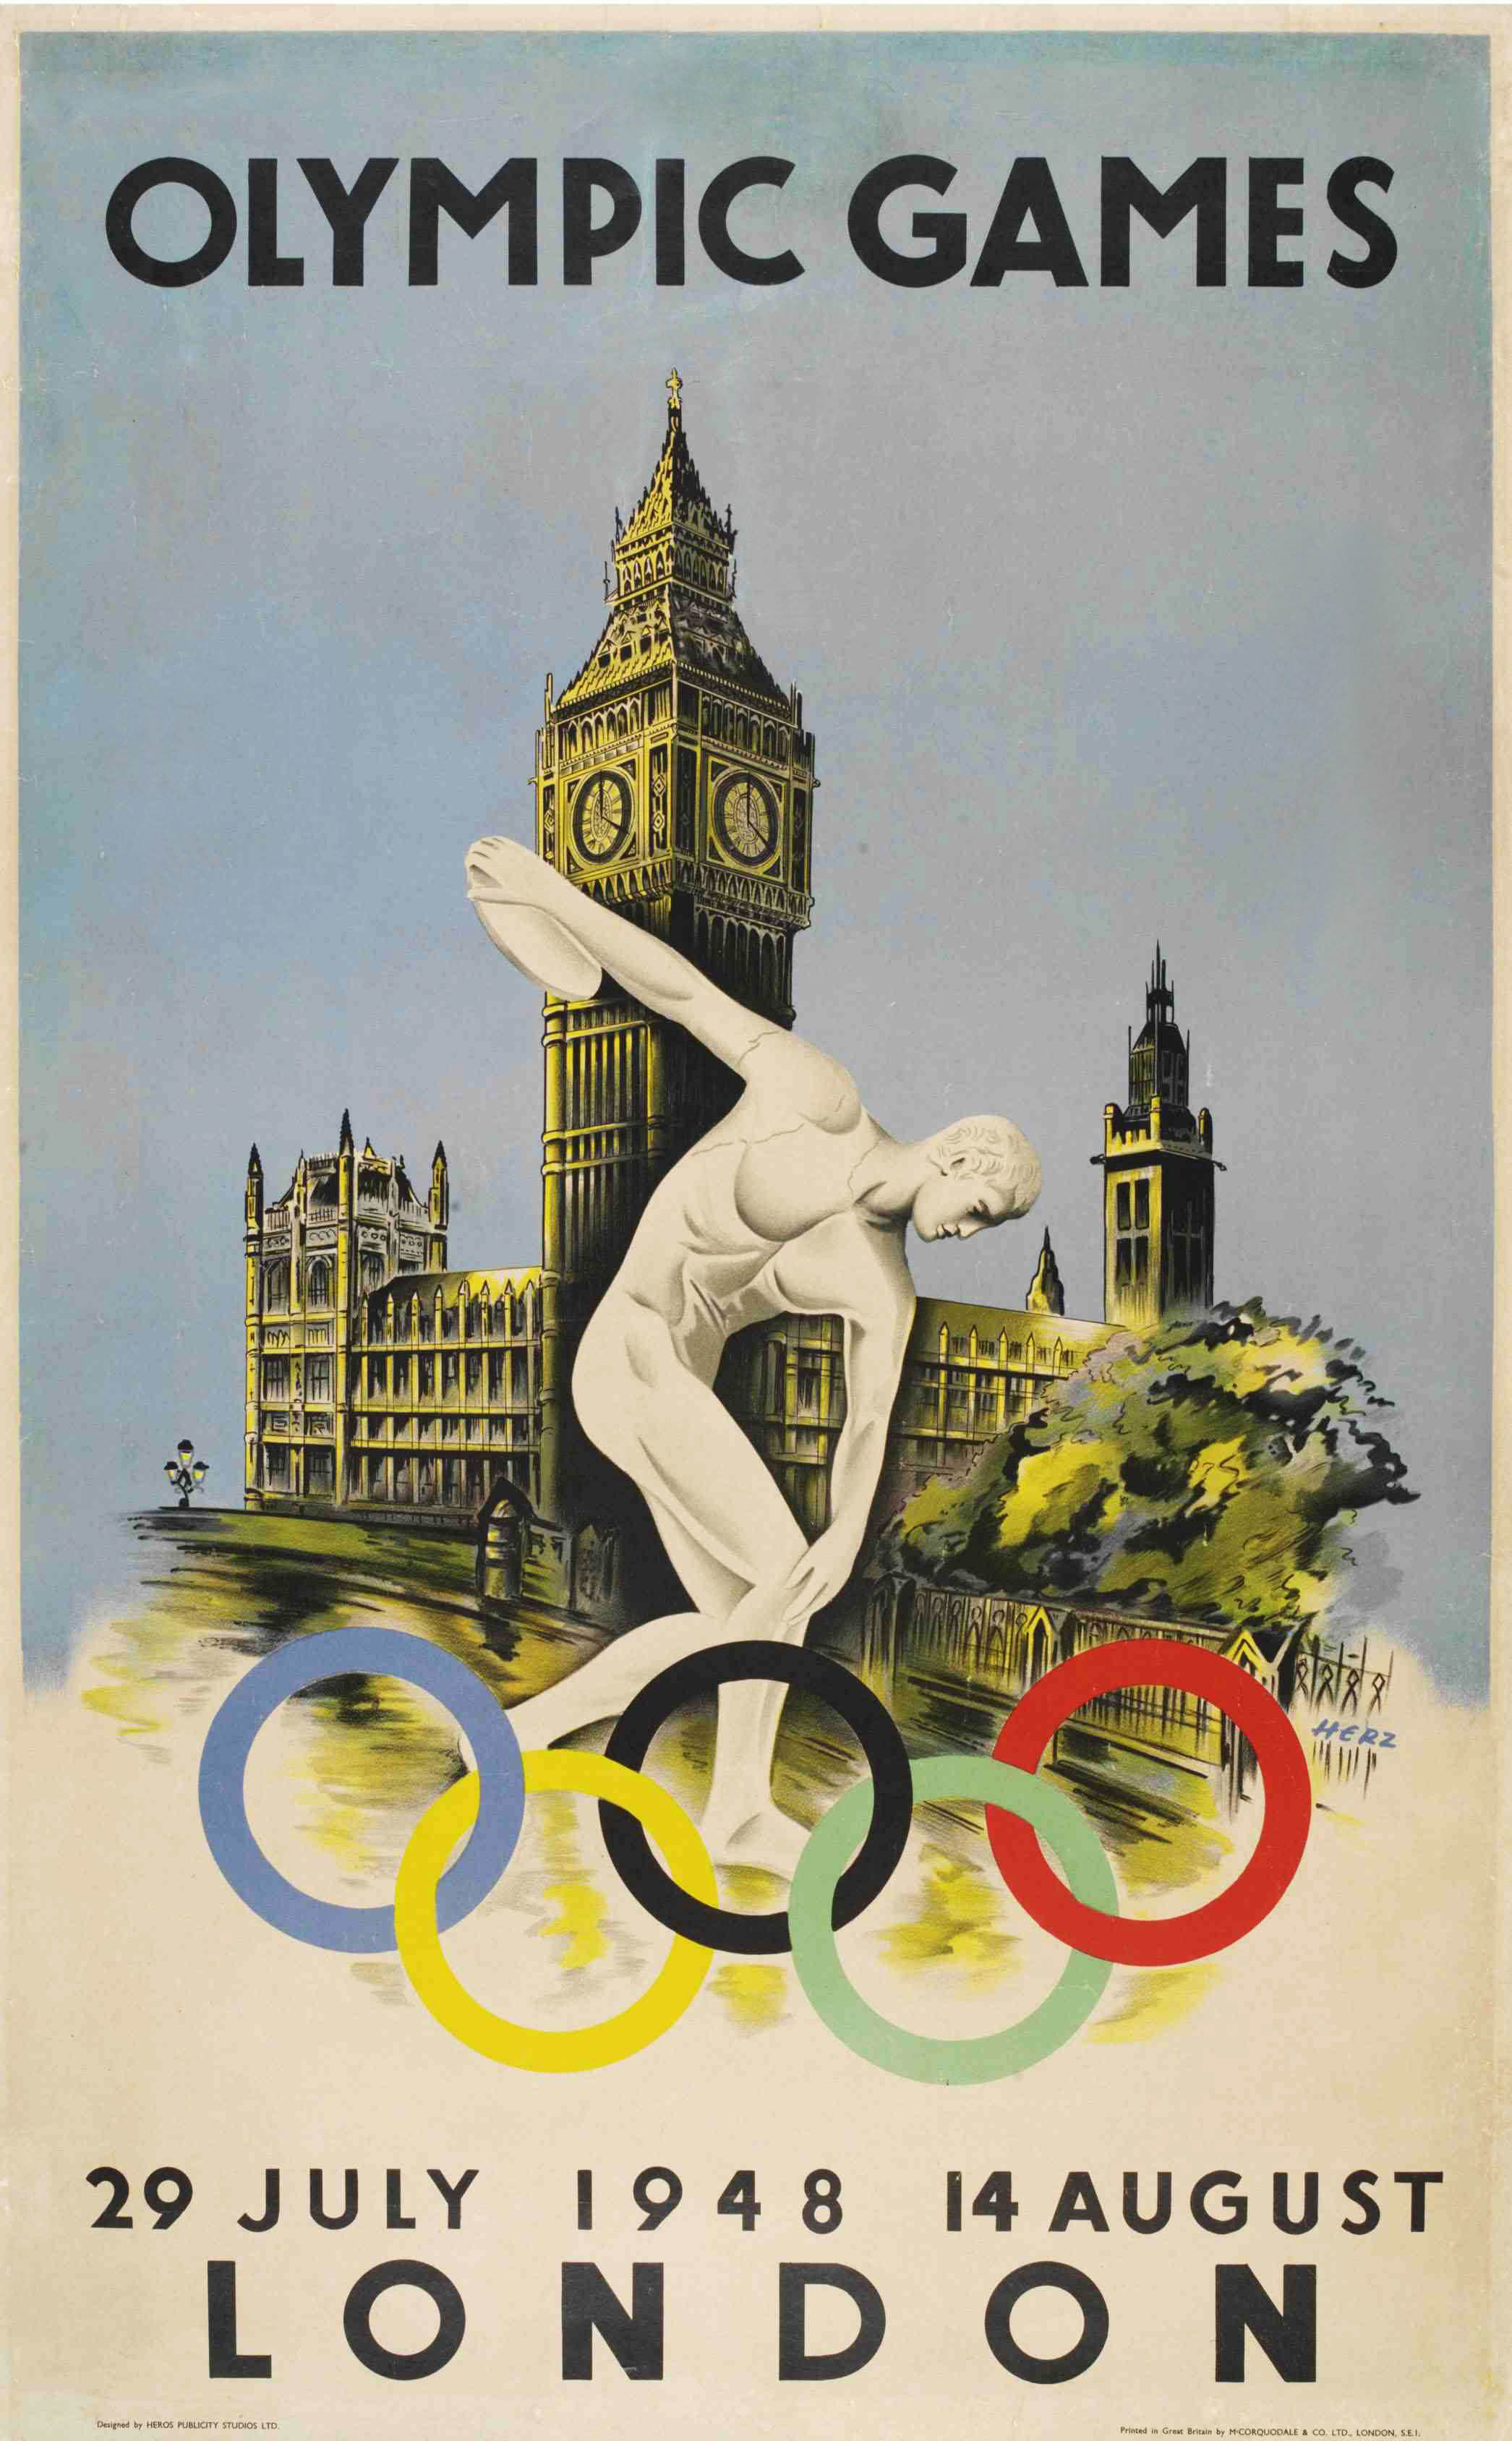 london olympics posters from 1908, 1948 and 2012